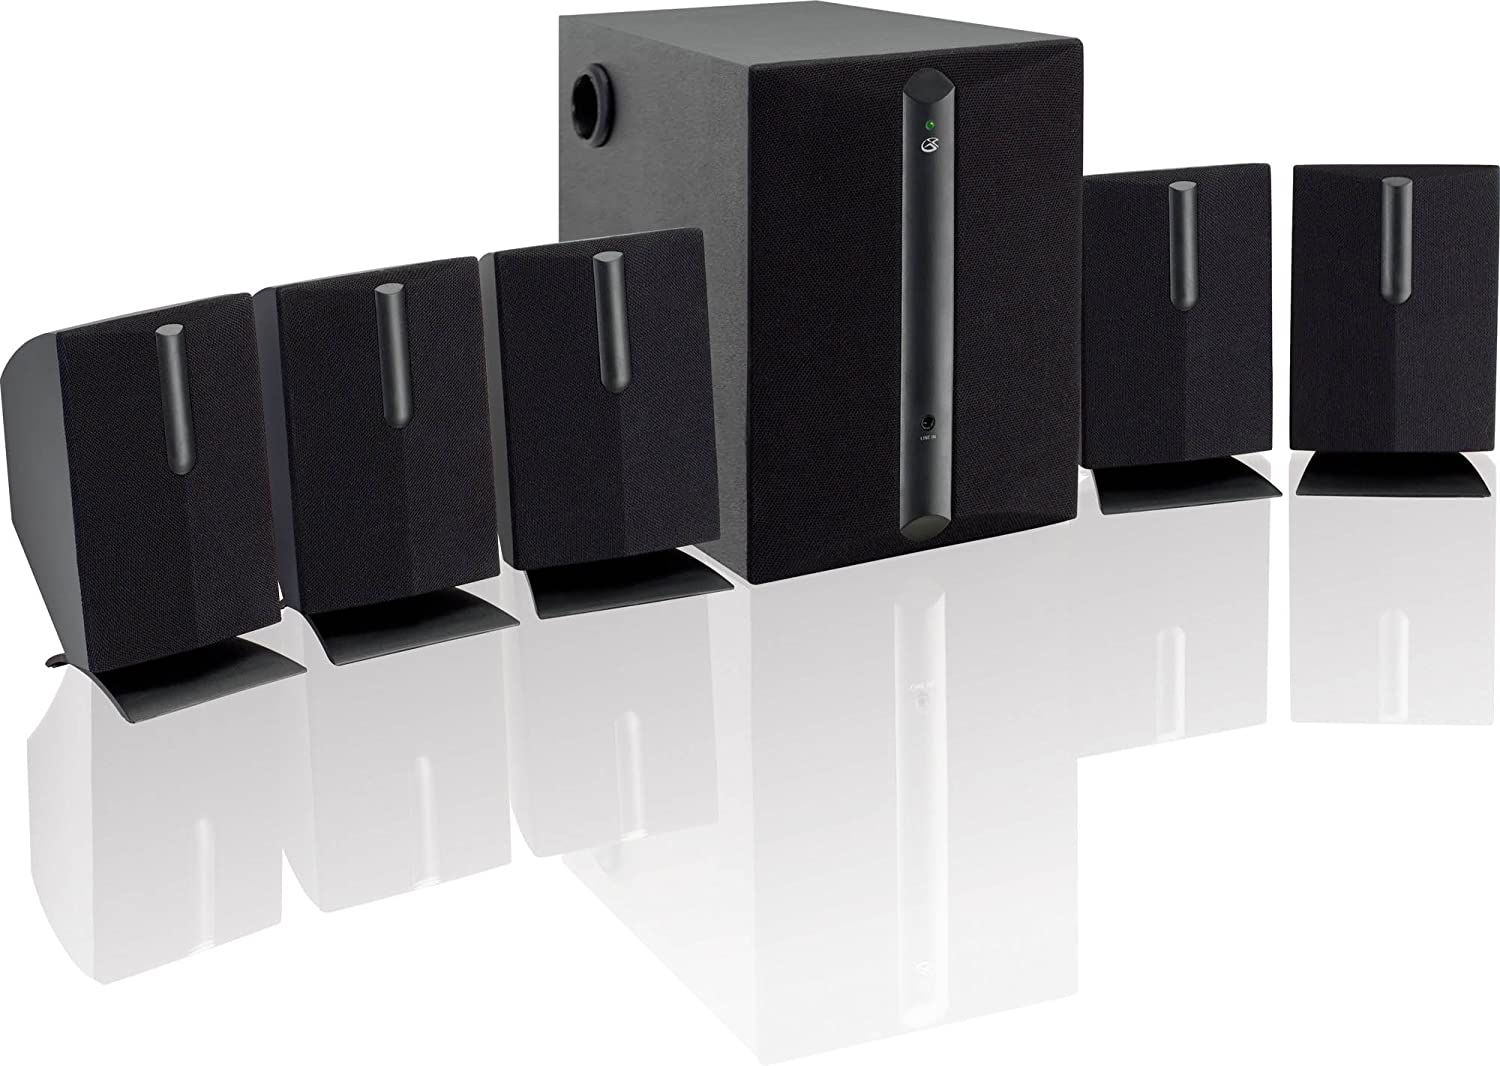 GPX HT8B 8.8 Channel Home Theater Speaker System (Black)